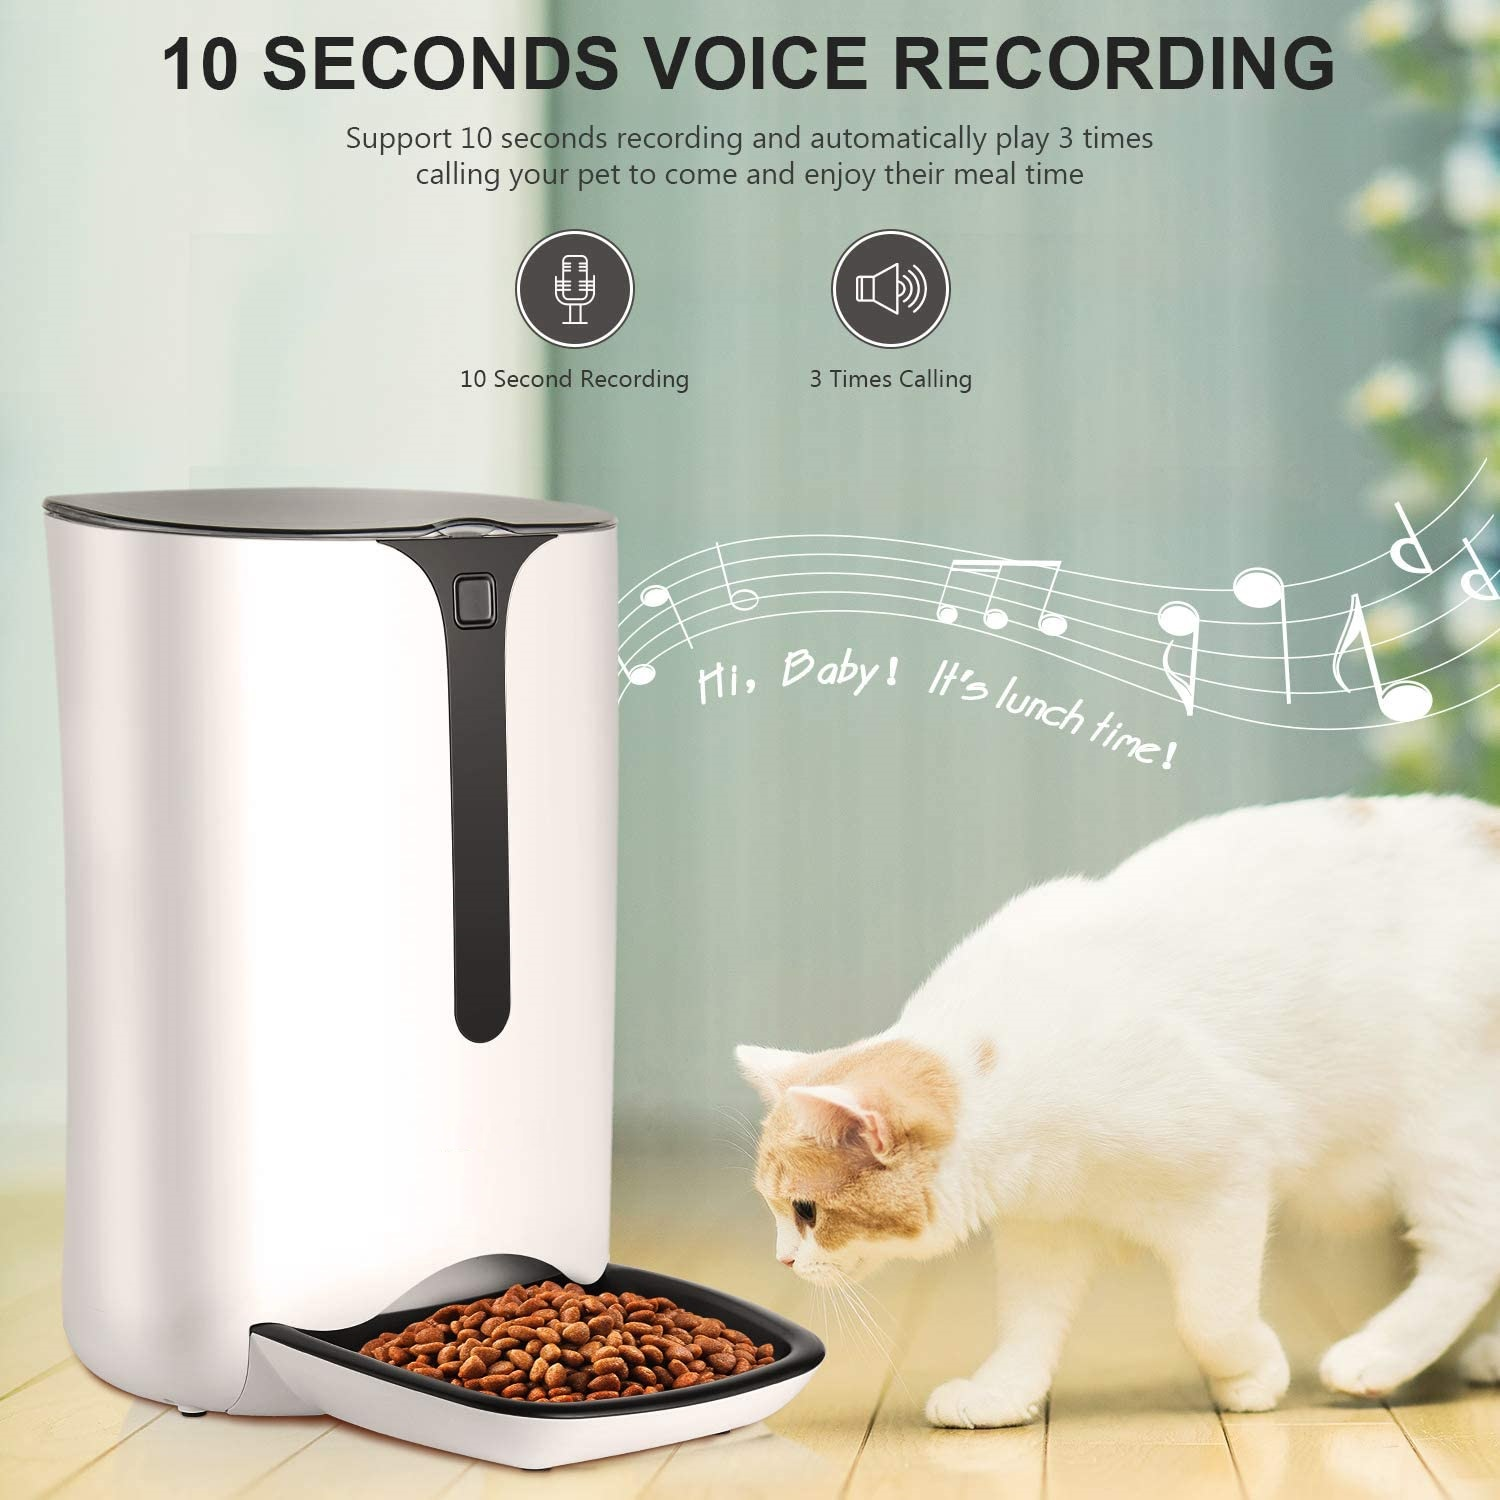 New Automatic 7l Pet Feeder Food Dispenser Dogs Cats 521a86 Uncle Wiener S Wholesale